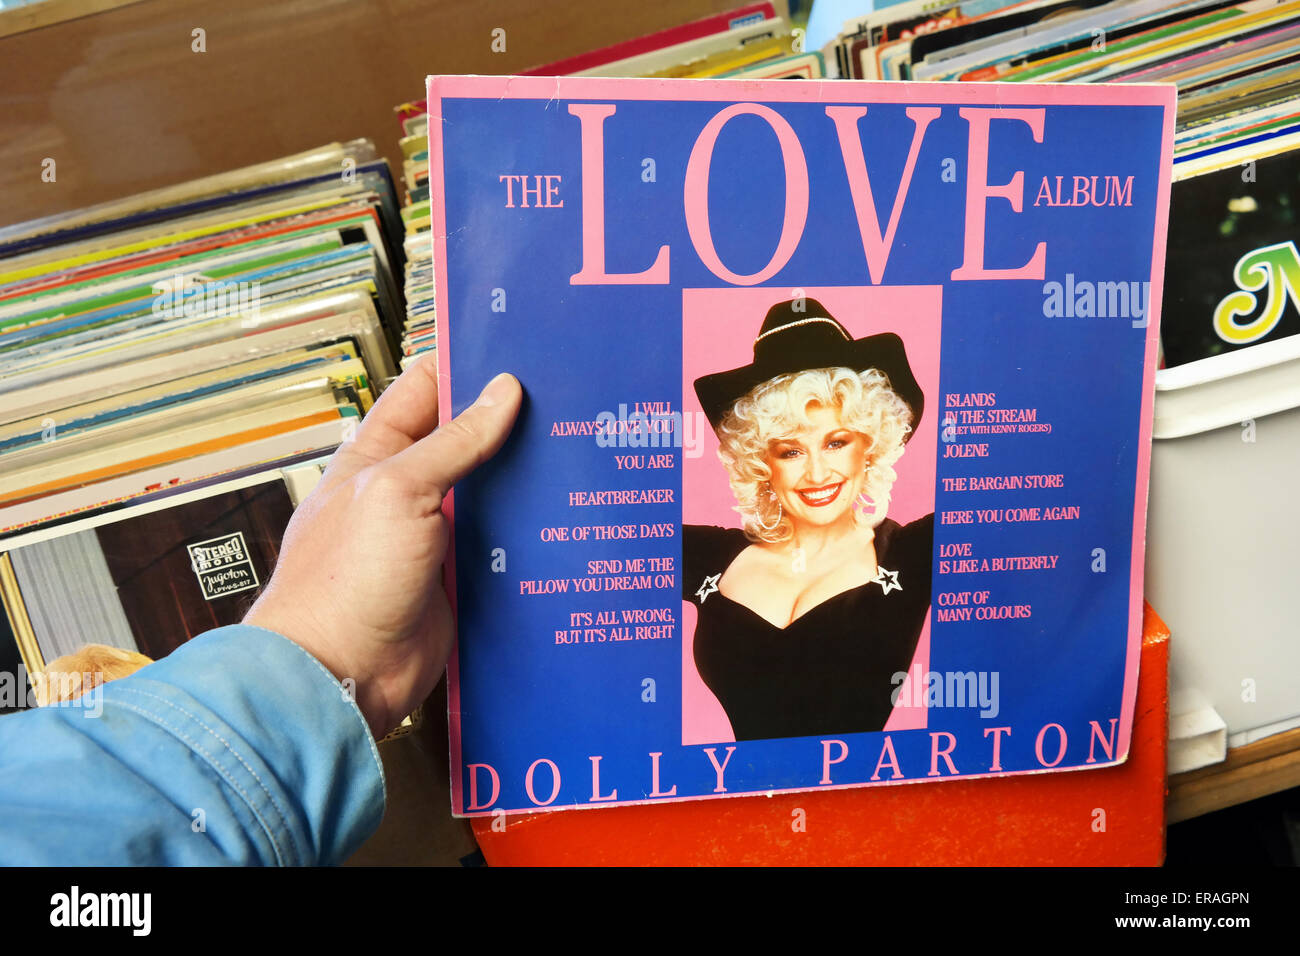 THE NETHERLANDS - MARCH 2015: LP record of the American singer-songwriter Dolly Parton in a second hand store. - Stock Image